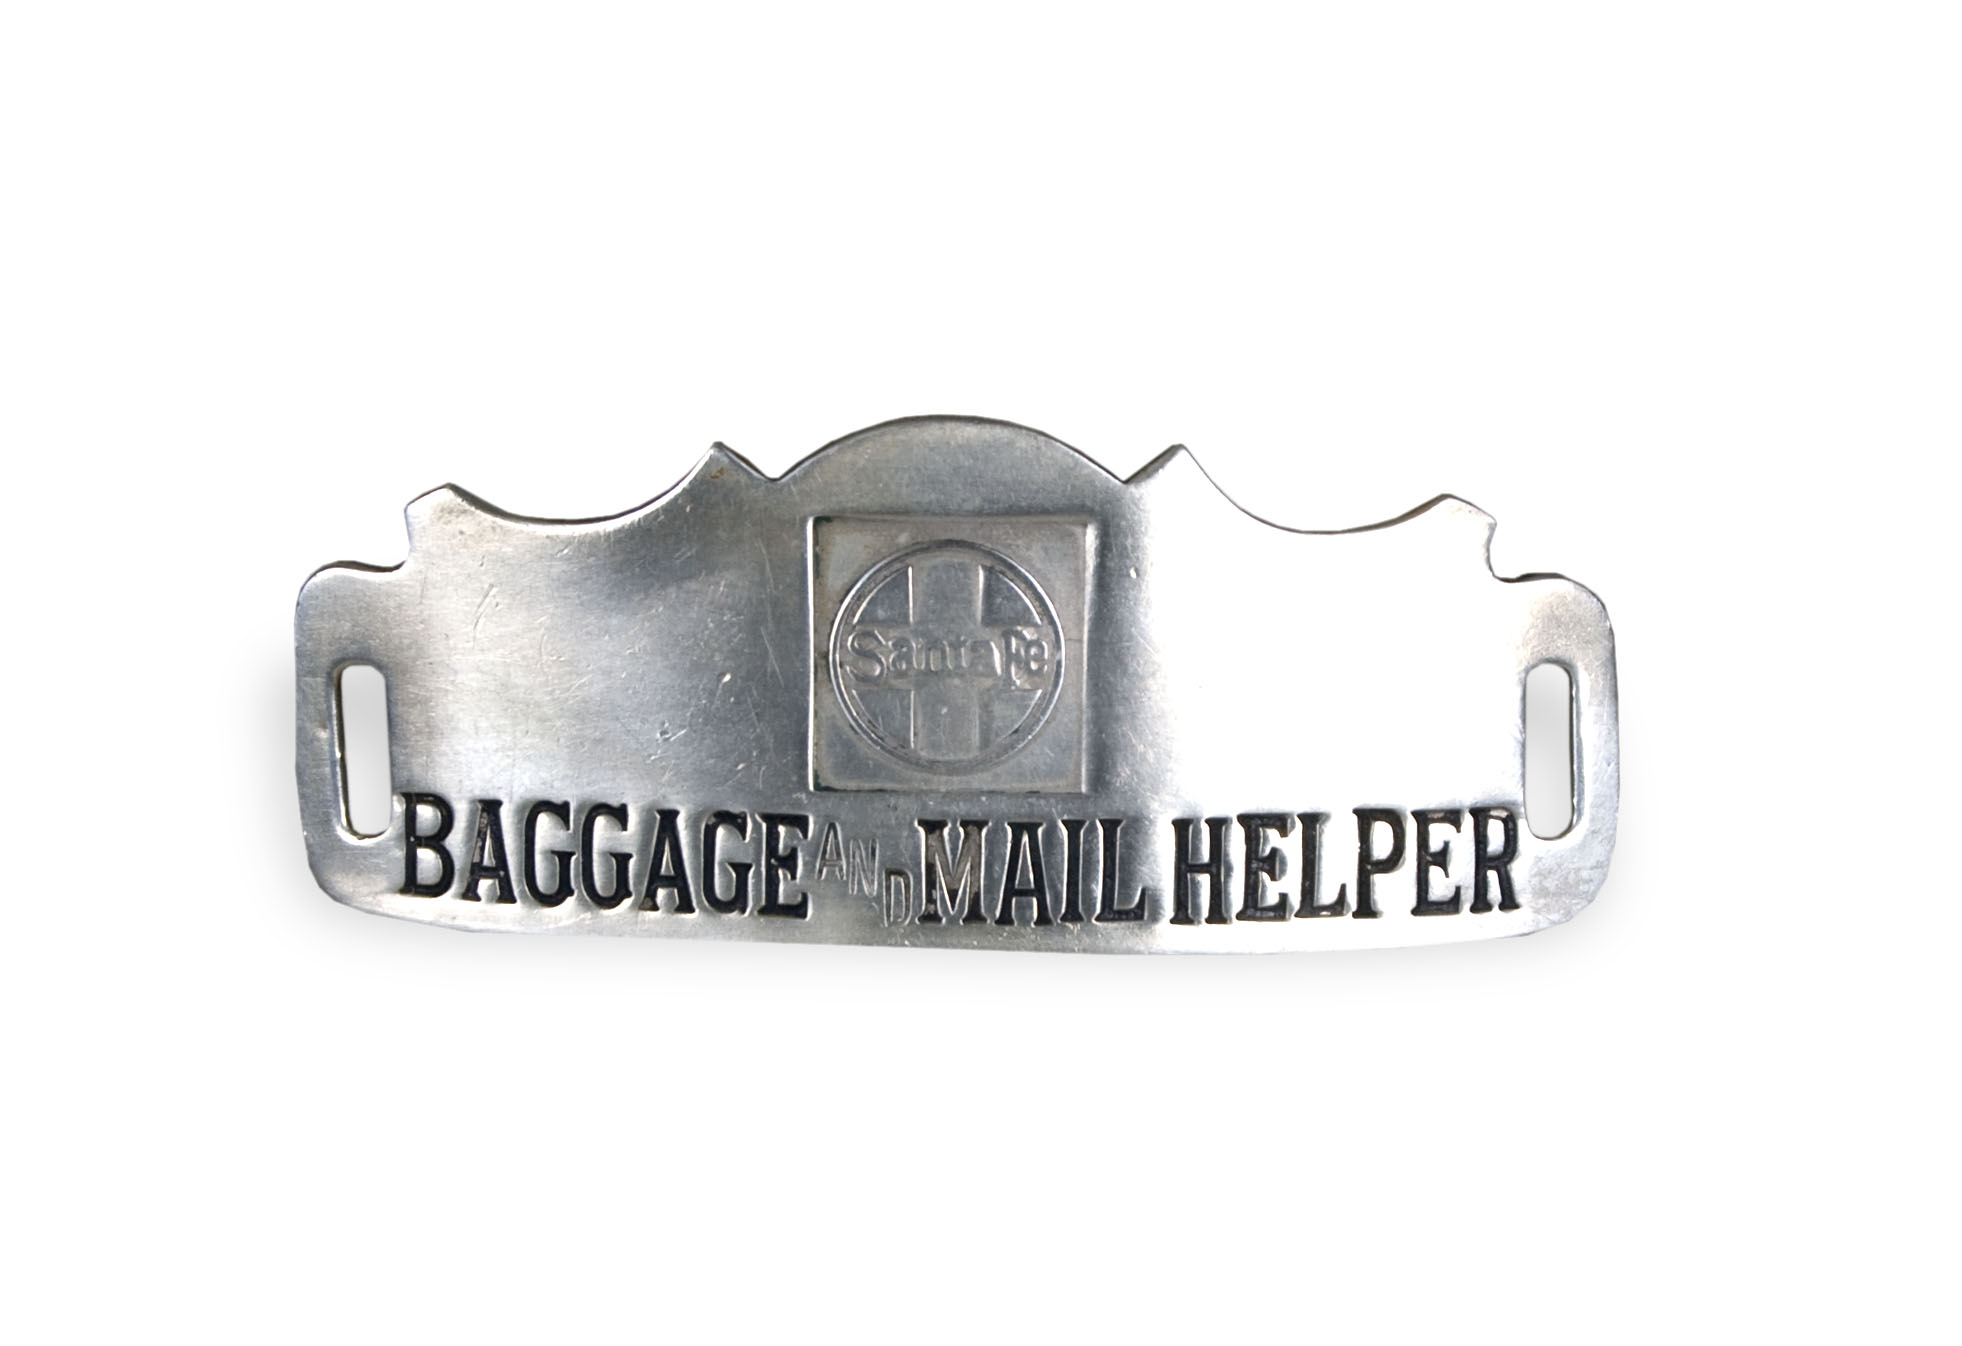 Railroad baggage and mail helper badge